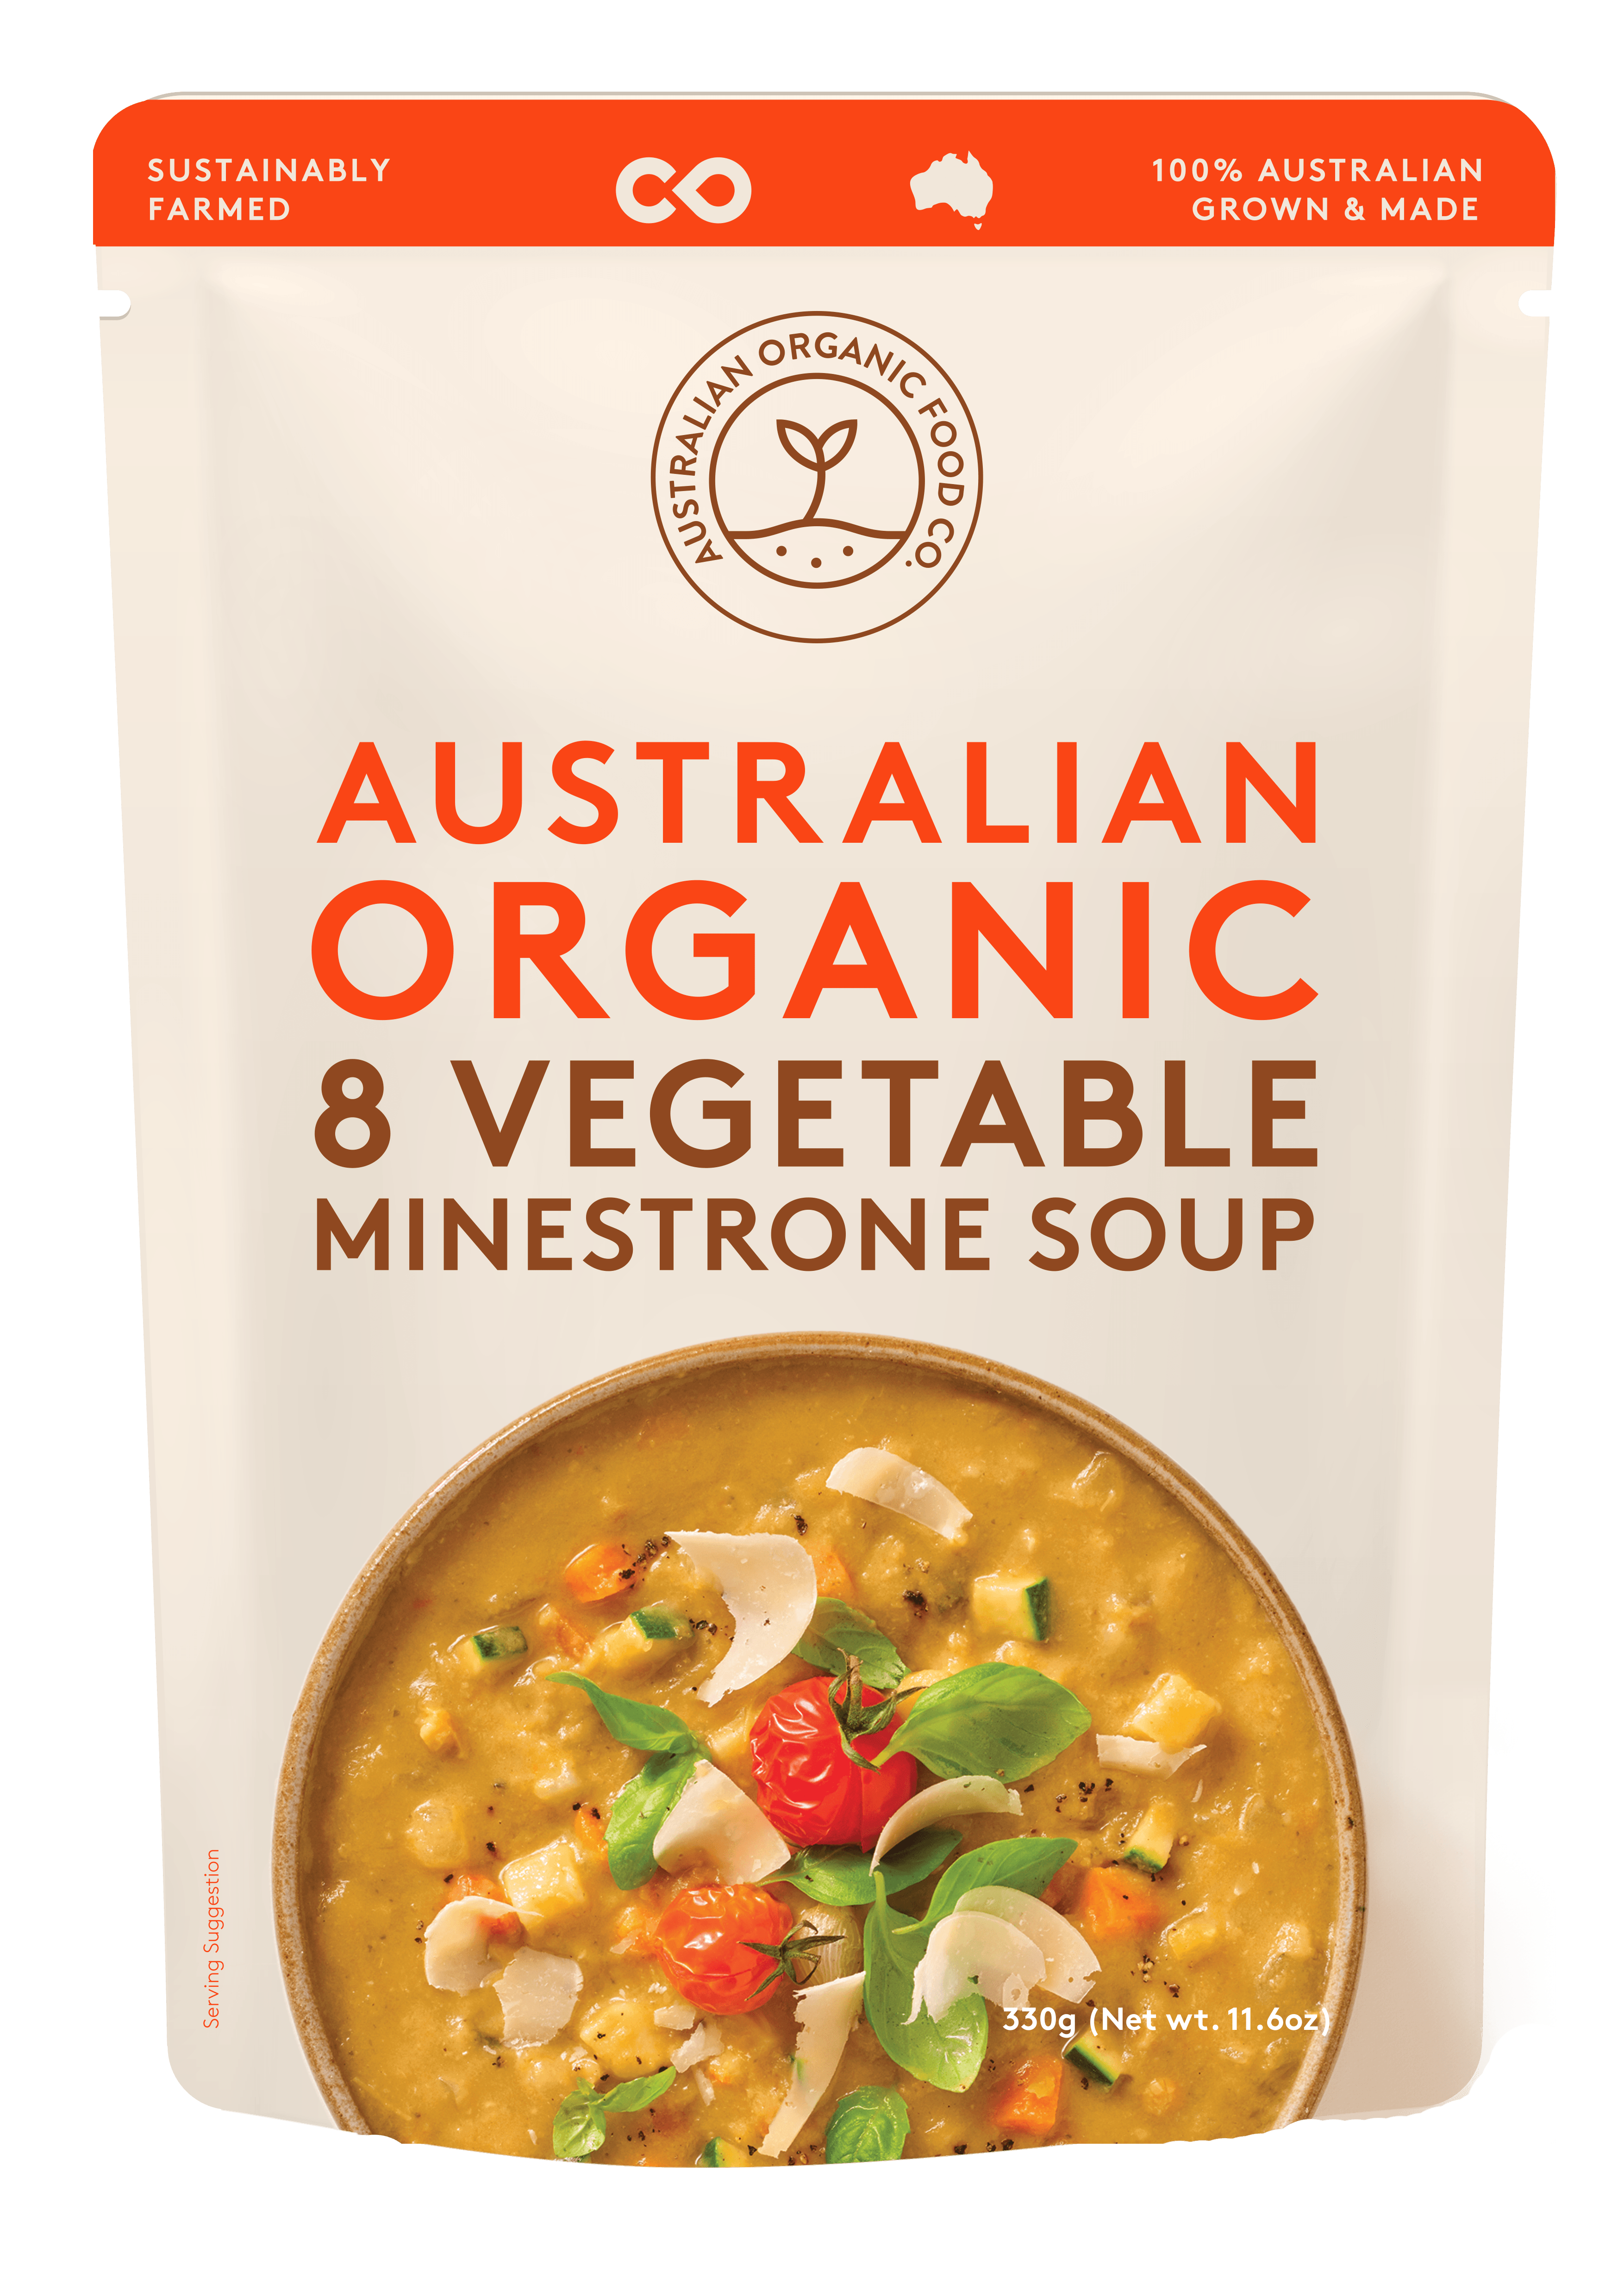 8 Vegetable Minestrone Soup Package Image